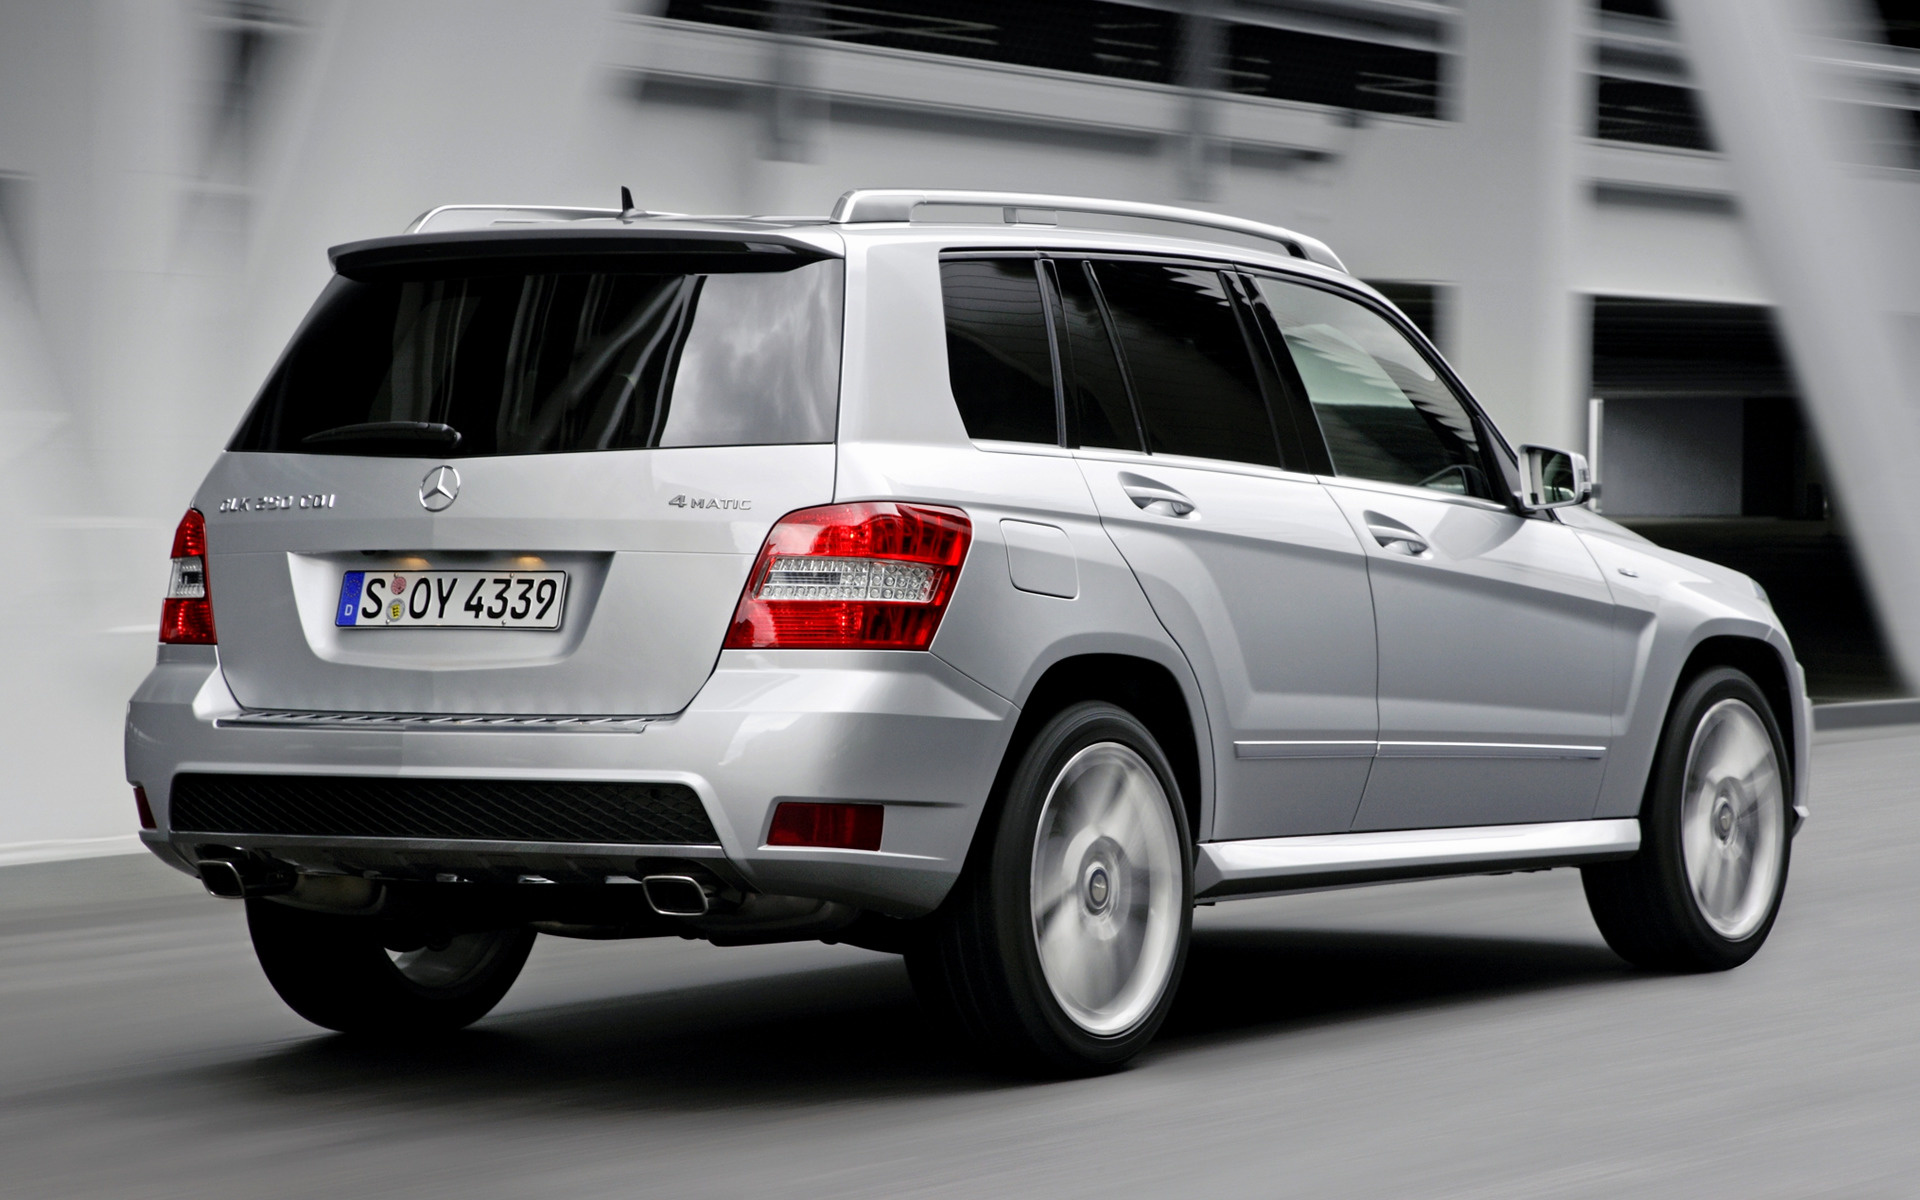 2009 mercedes benz glk class amg styling wallpapers and hd images car pixel. Black Bedroom Furniture Sets. Home Design Ideas